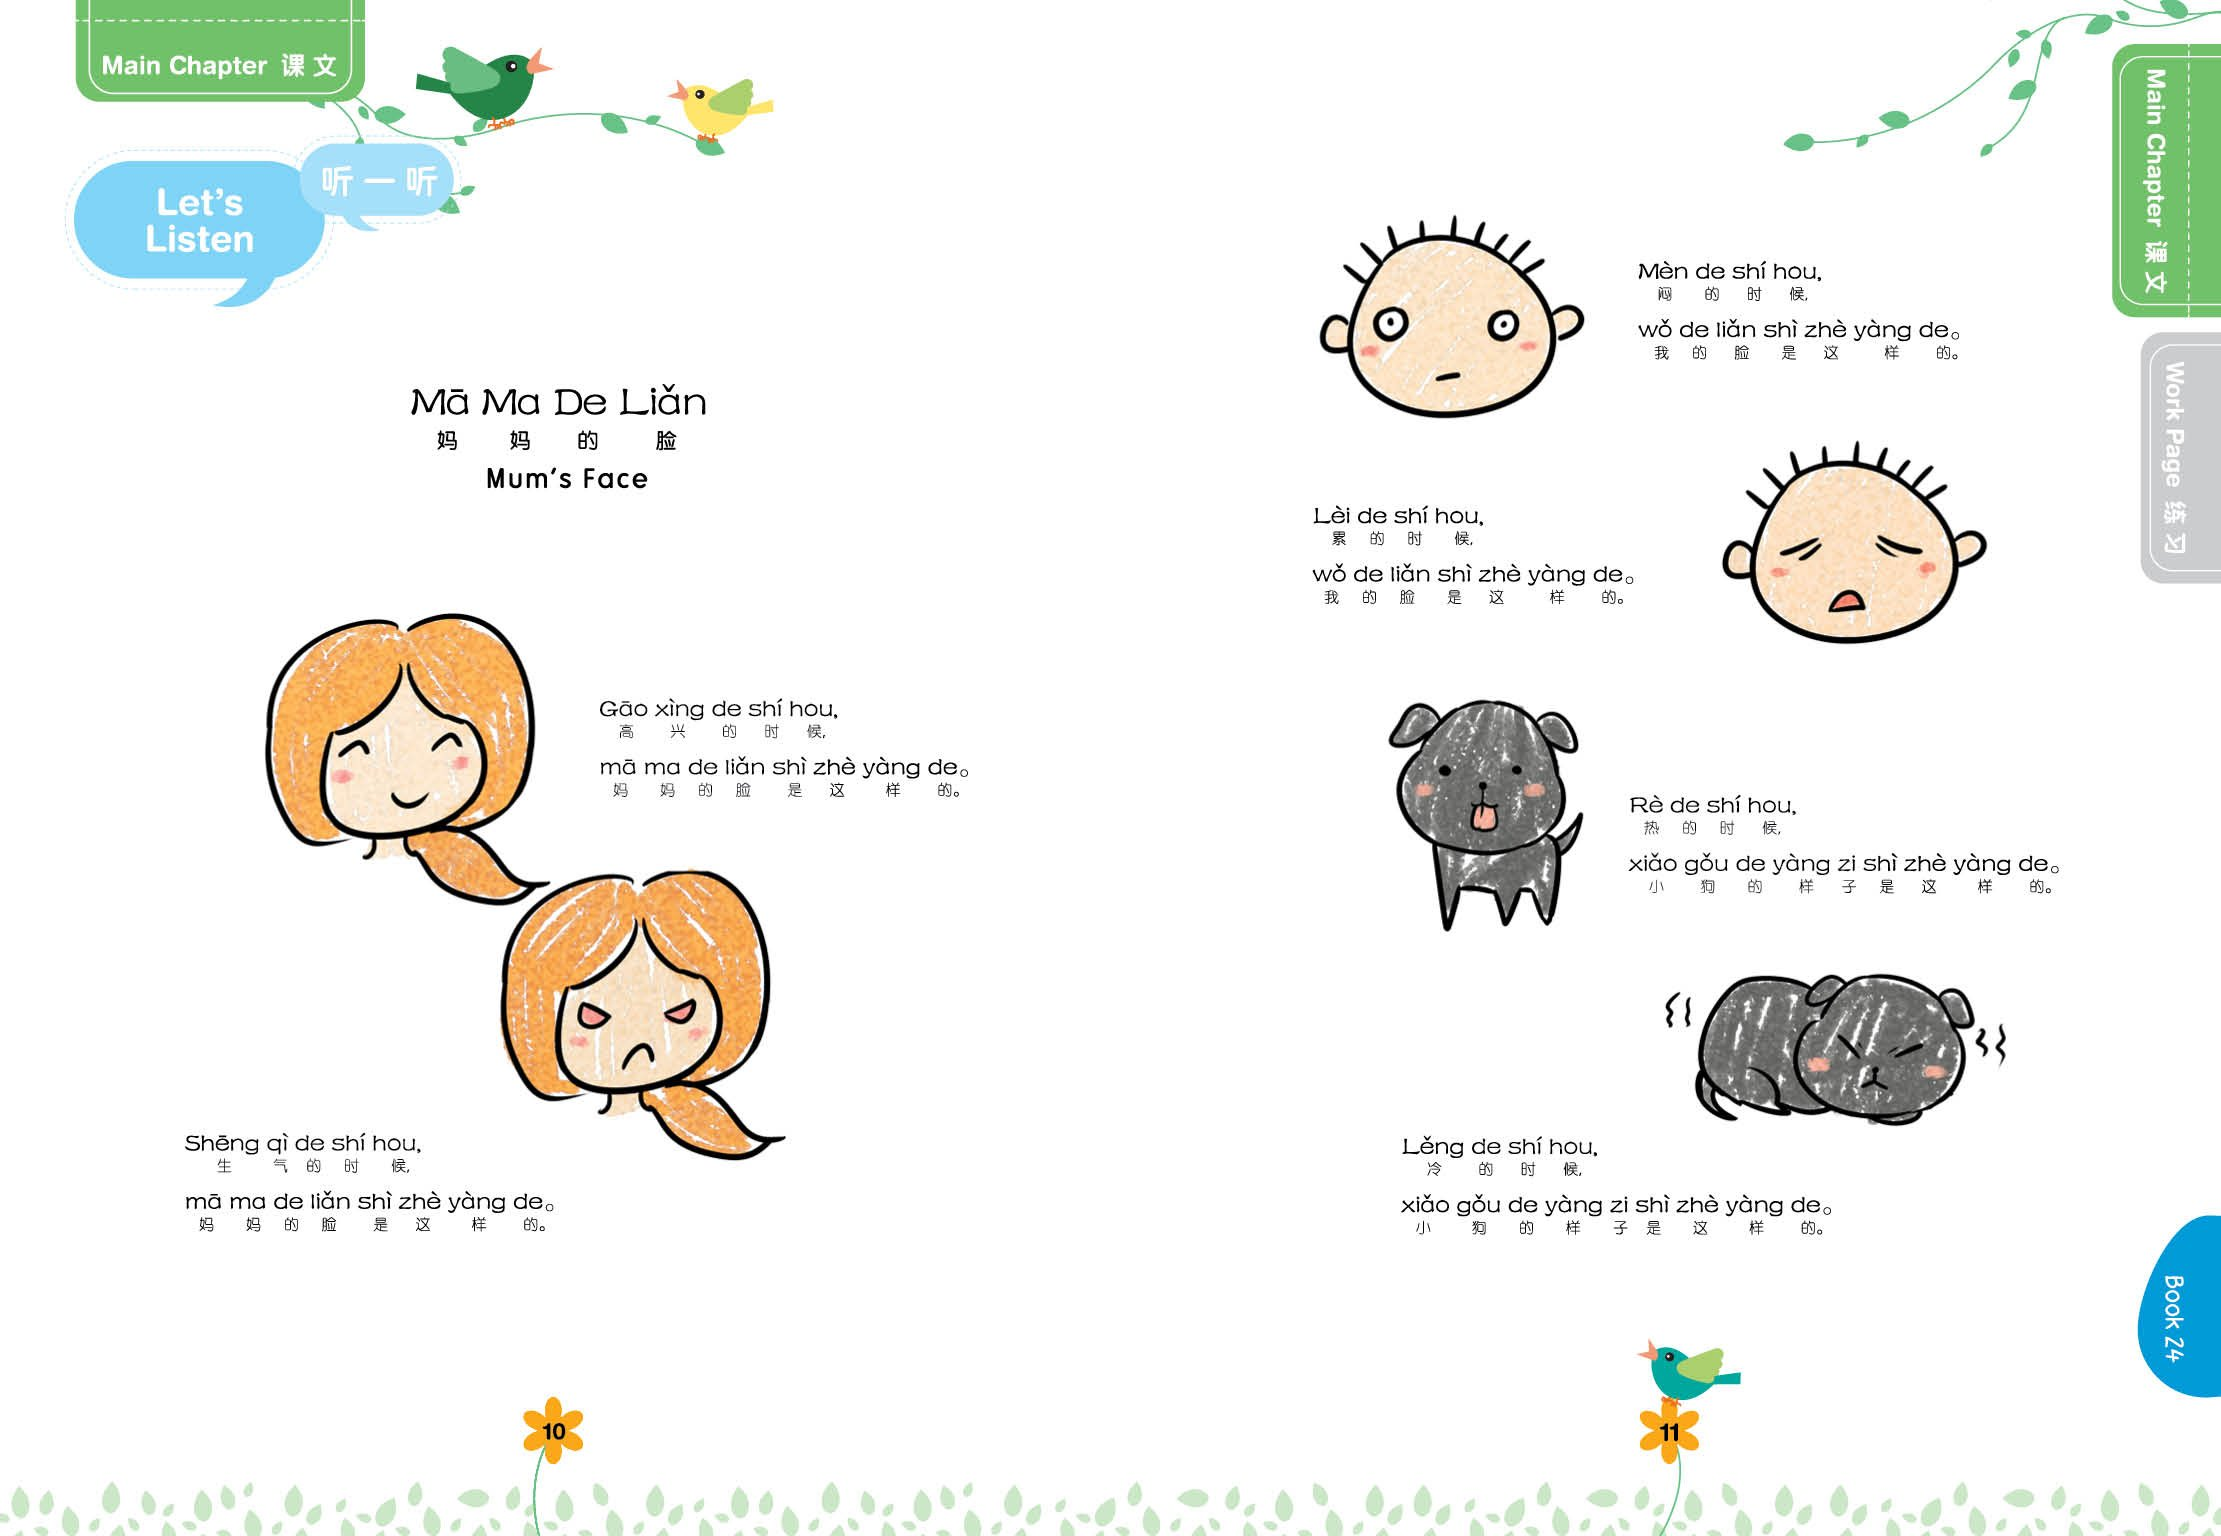 My Fun Chinese (MFC) I Can Speak Purple Set 1 (English and Chinese Edition) by Beijing Mandarin (H.K.) (Image #6)